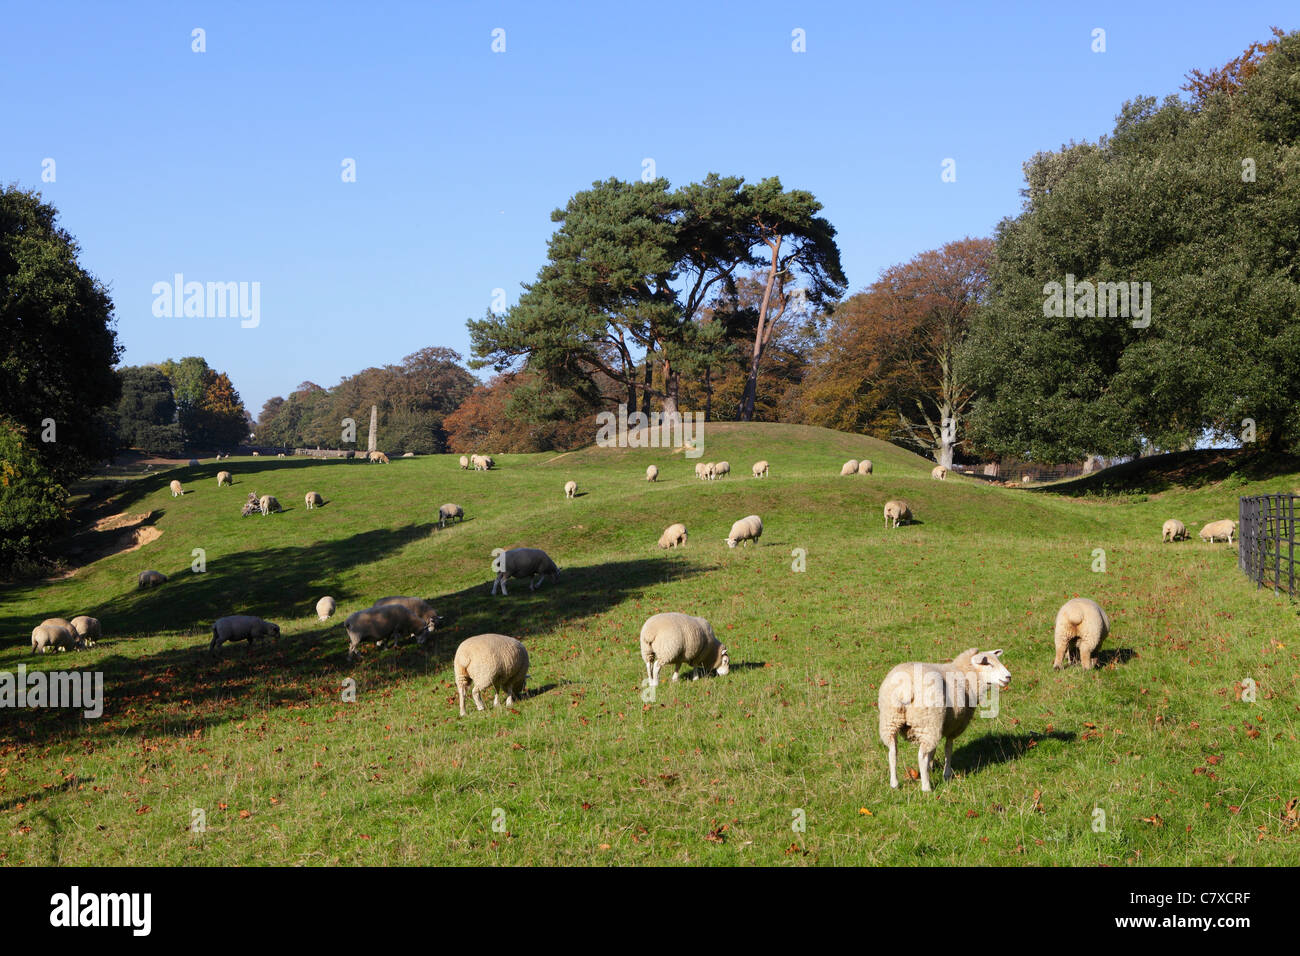 Pastoral scene of sheep grazing in English countryside, Winchelsea, East Sussex, England, UK, GB - Stock Image